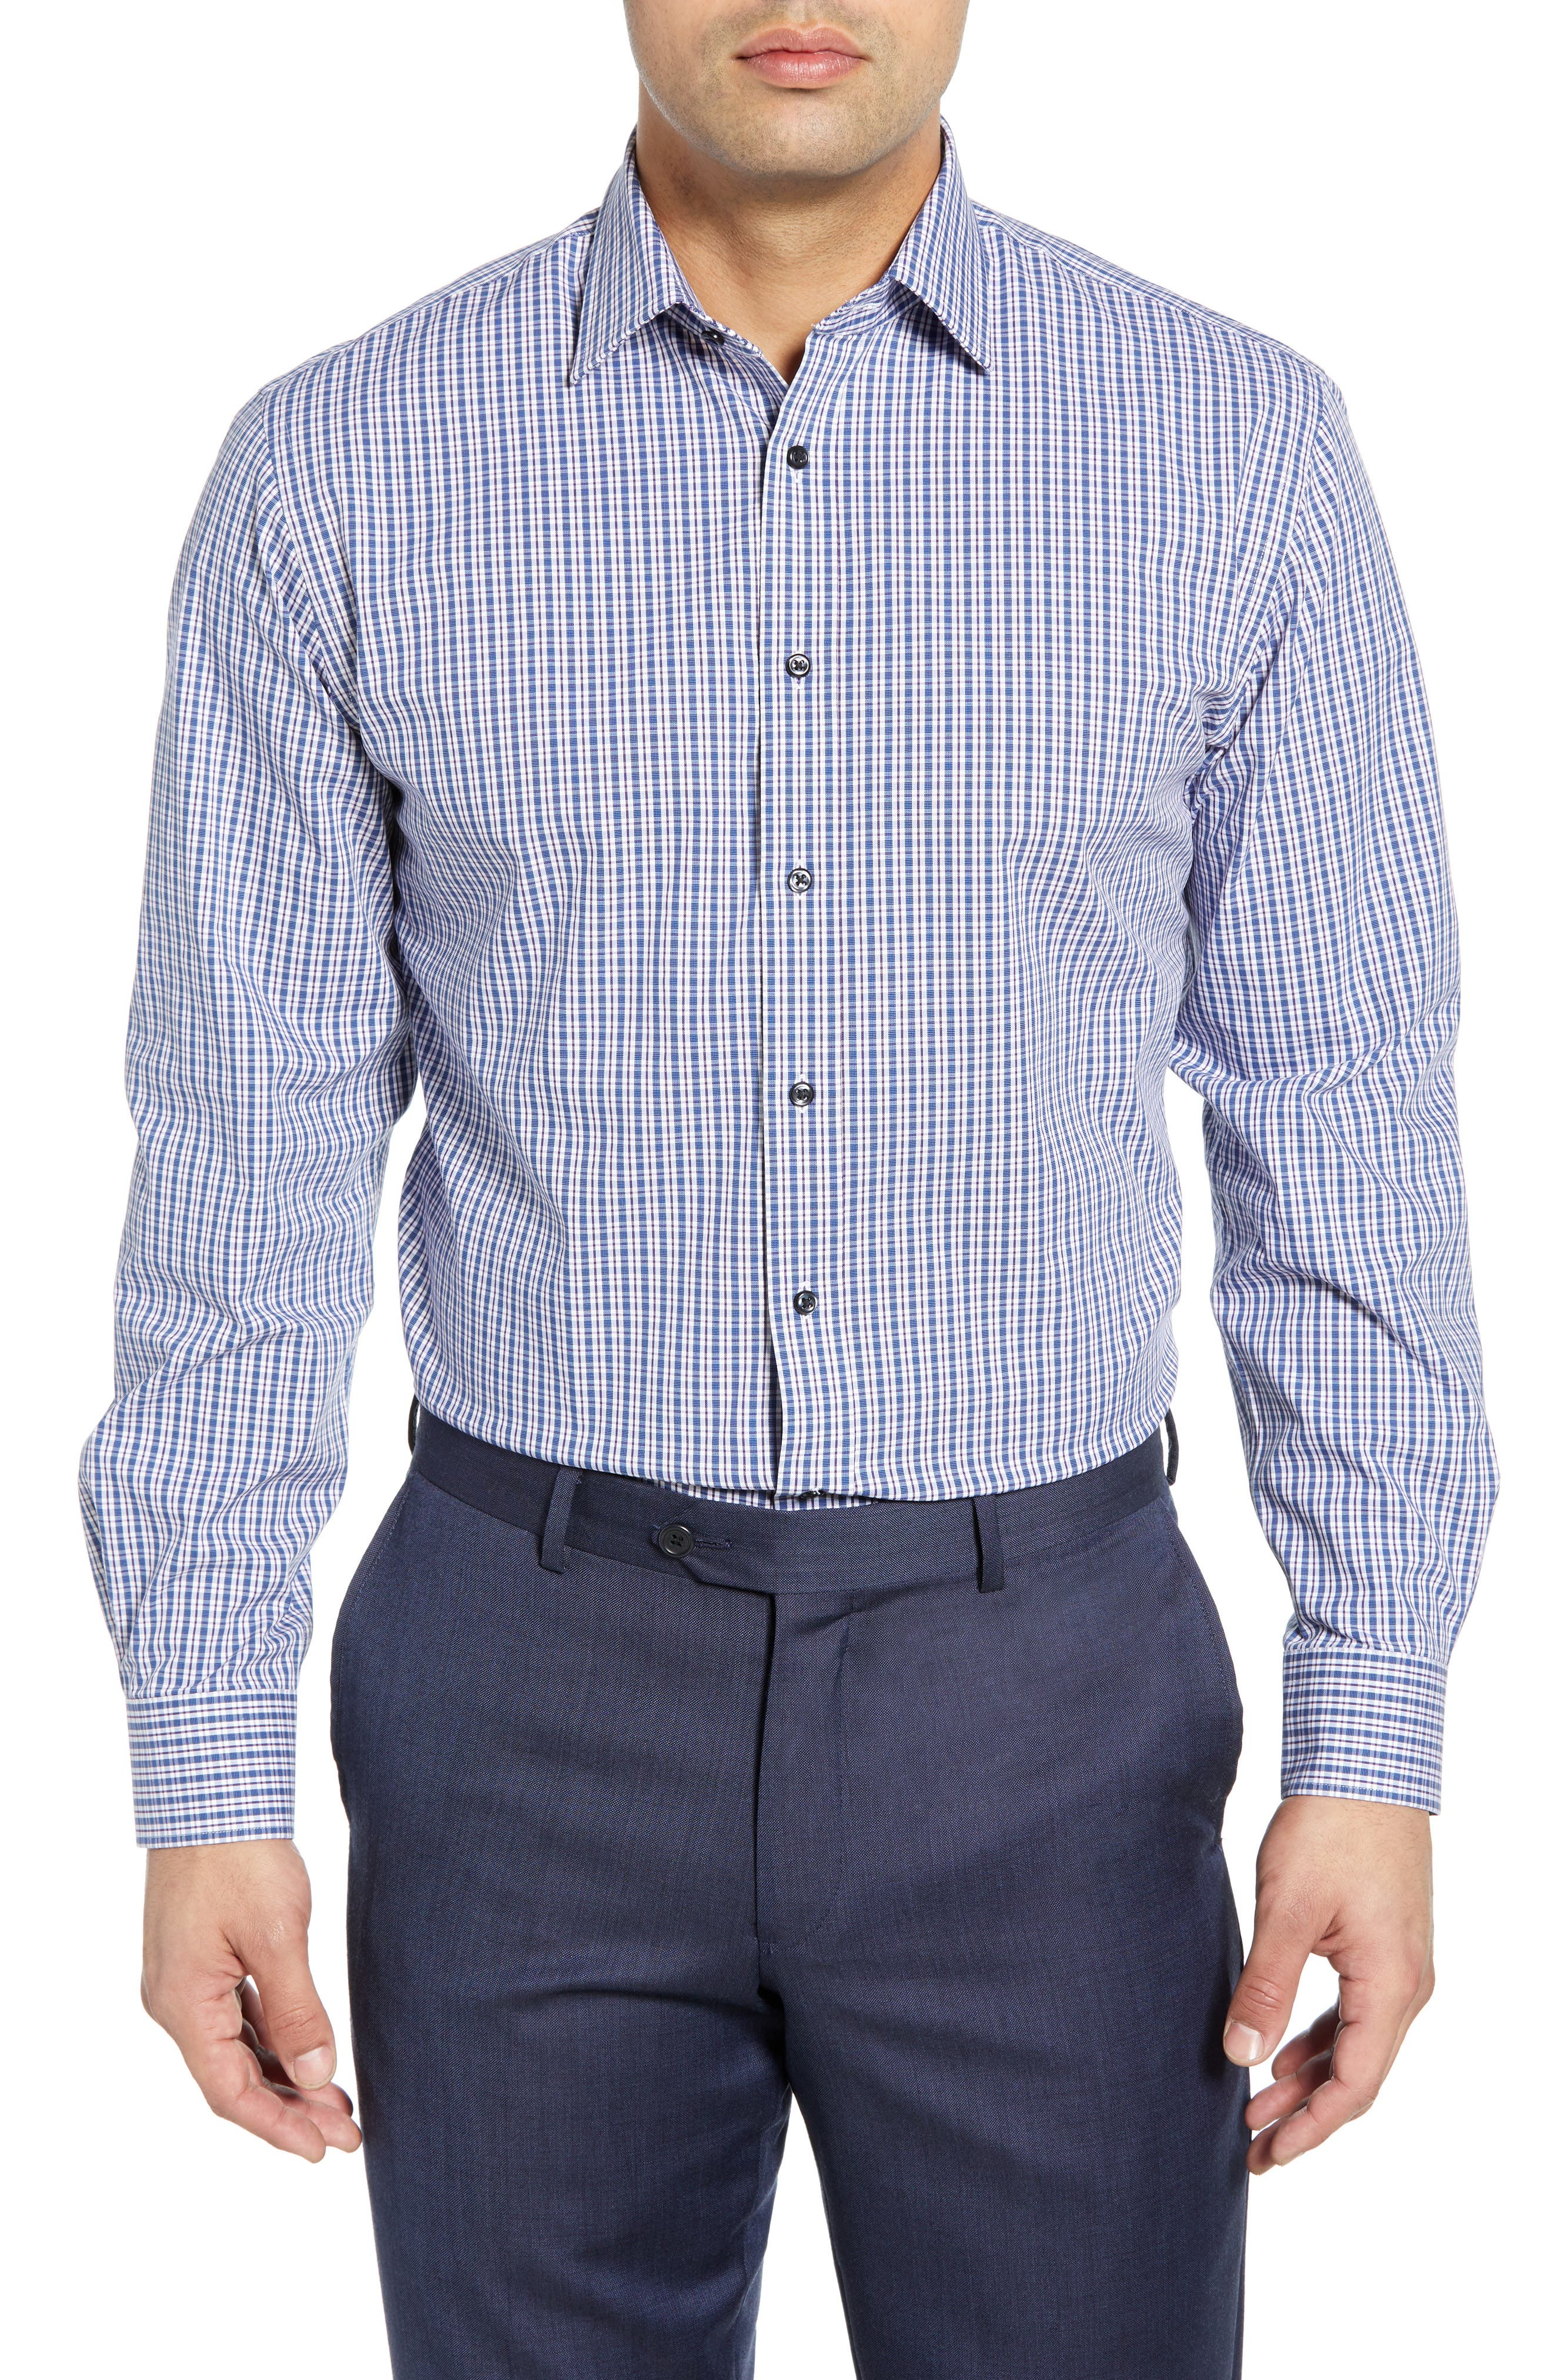 Tech-Smart Traditional Fit Plaid Stretch Dress Shirt,                             Main thumbnail 1, color,                             NAVY DUSK